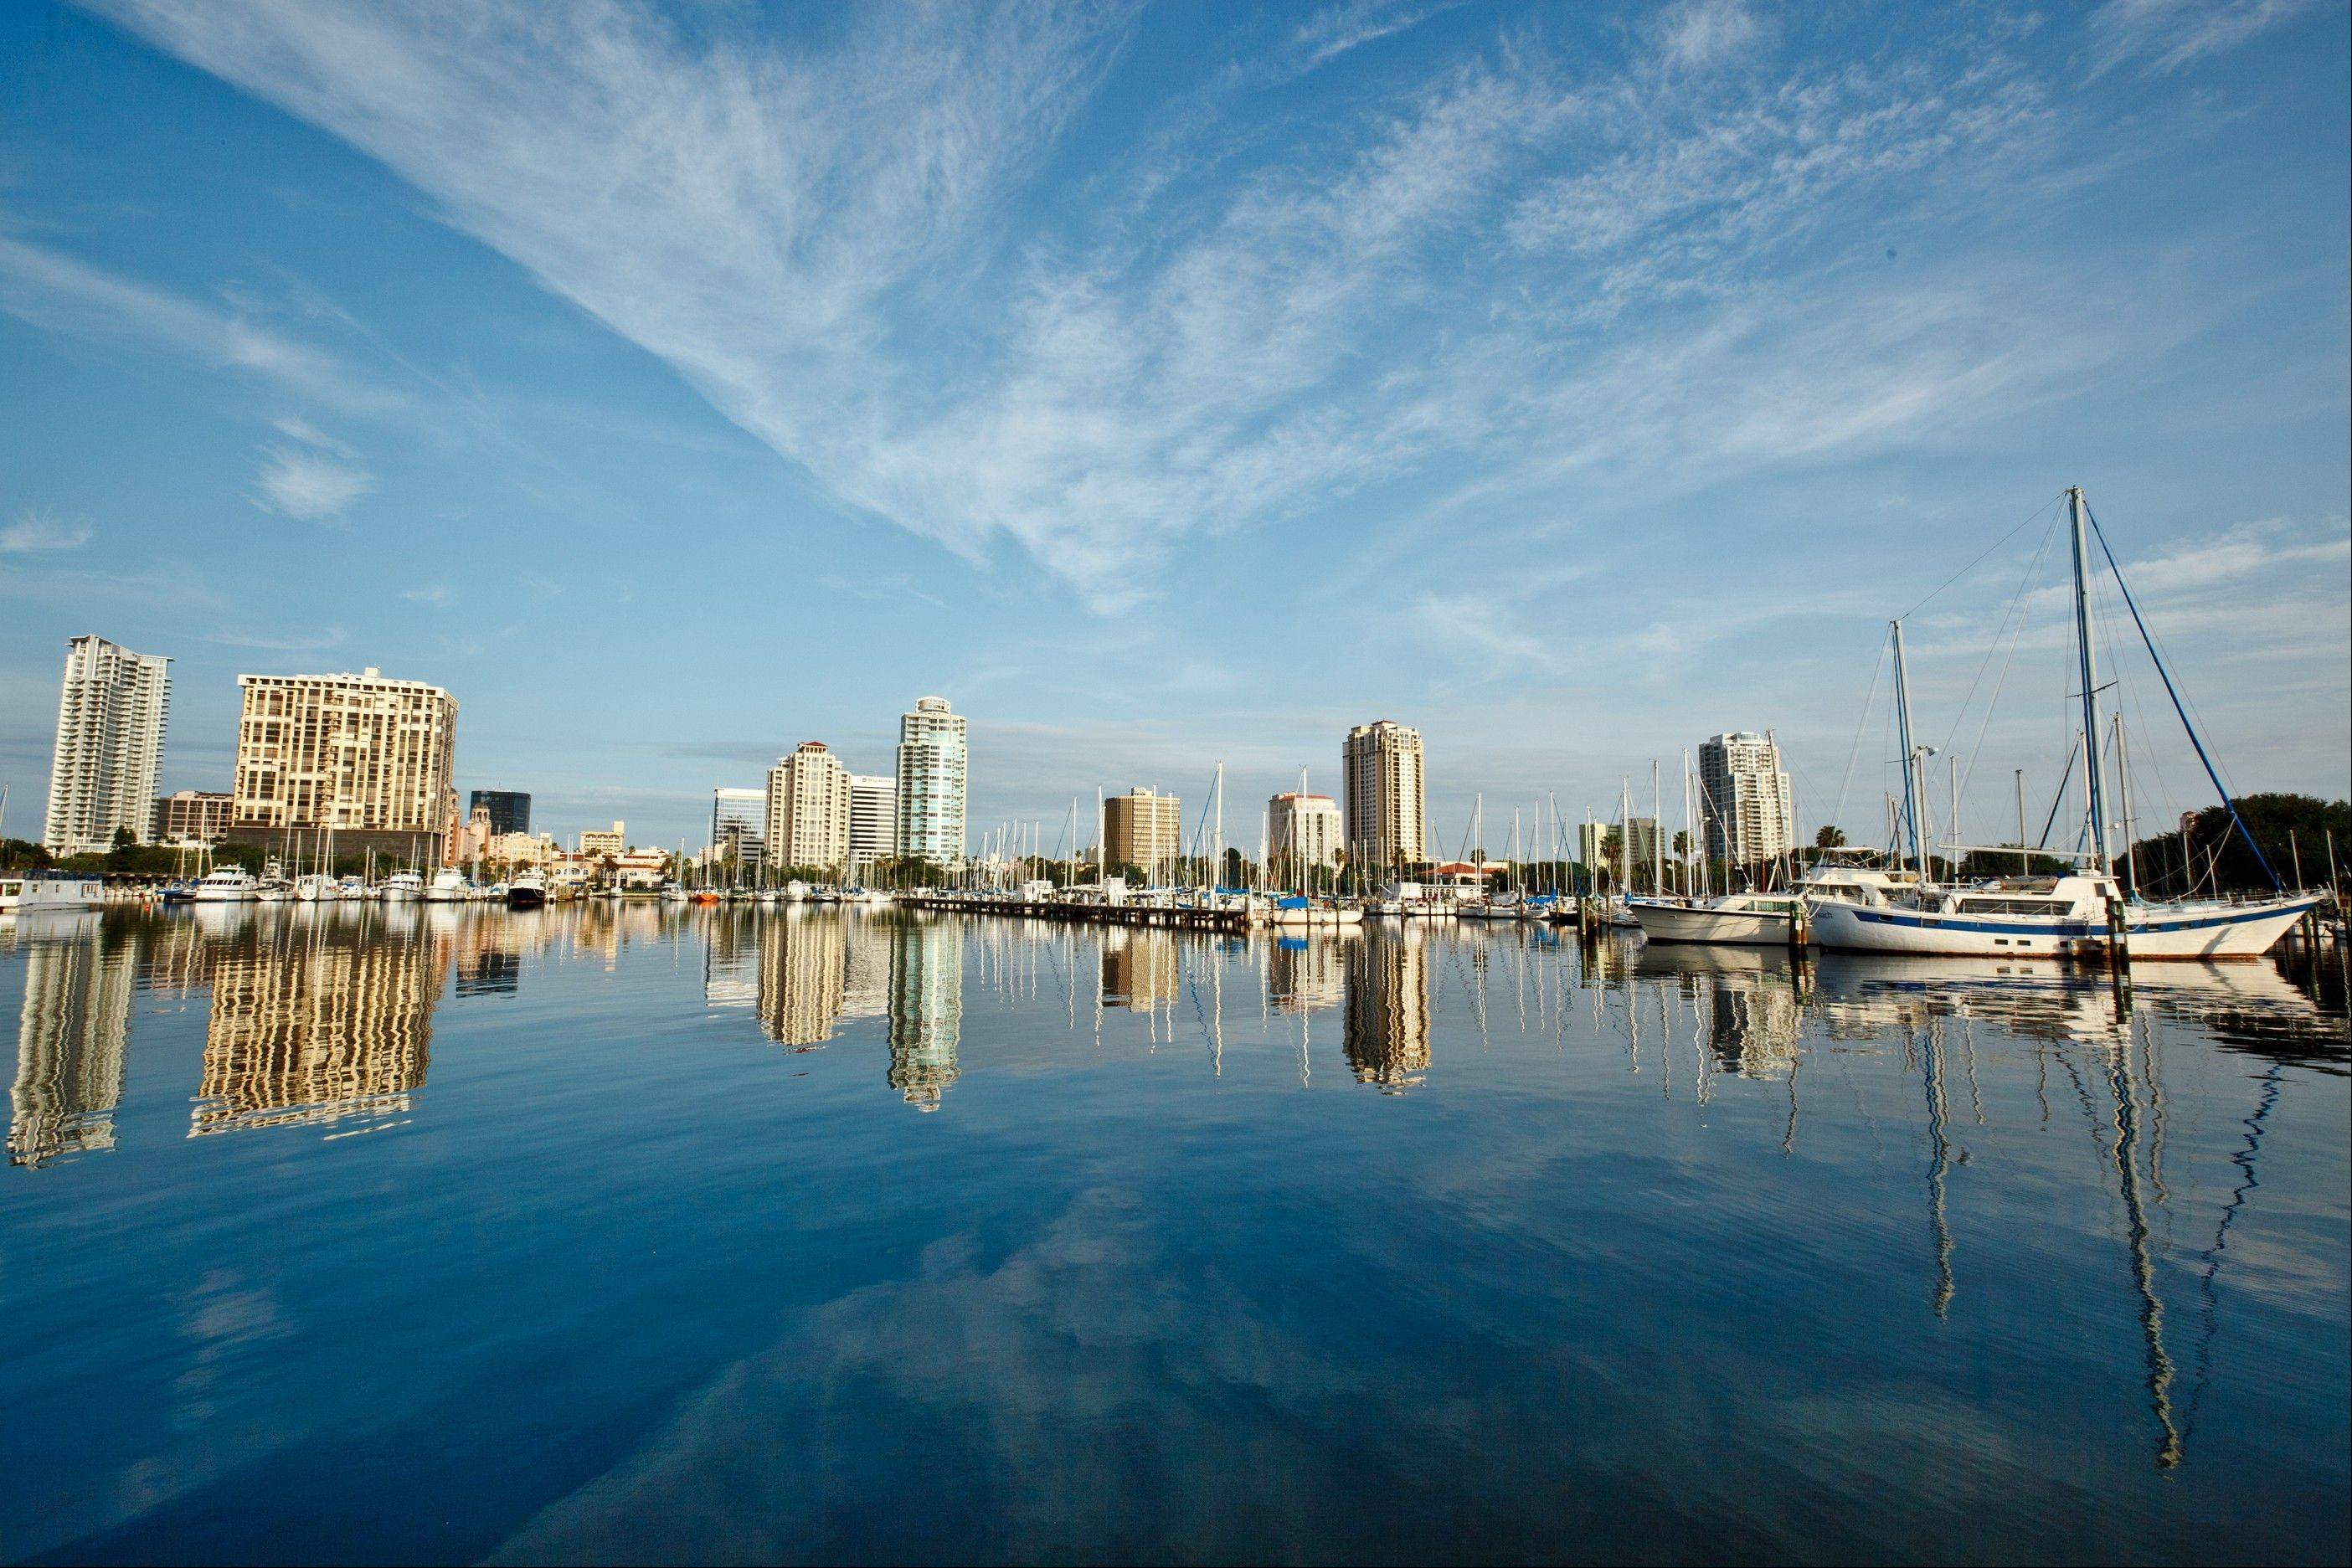 Visitors can enjoy the St. Petersburg skyline and waterfront.